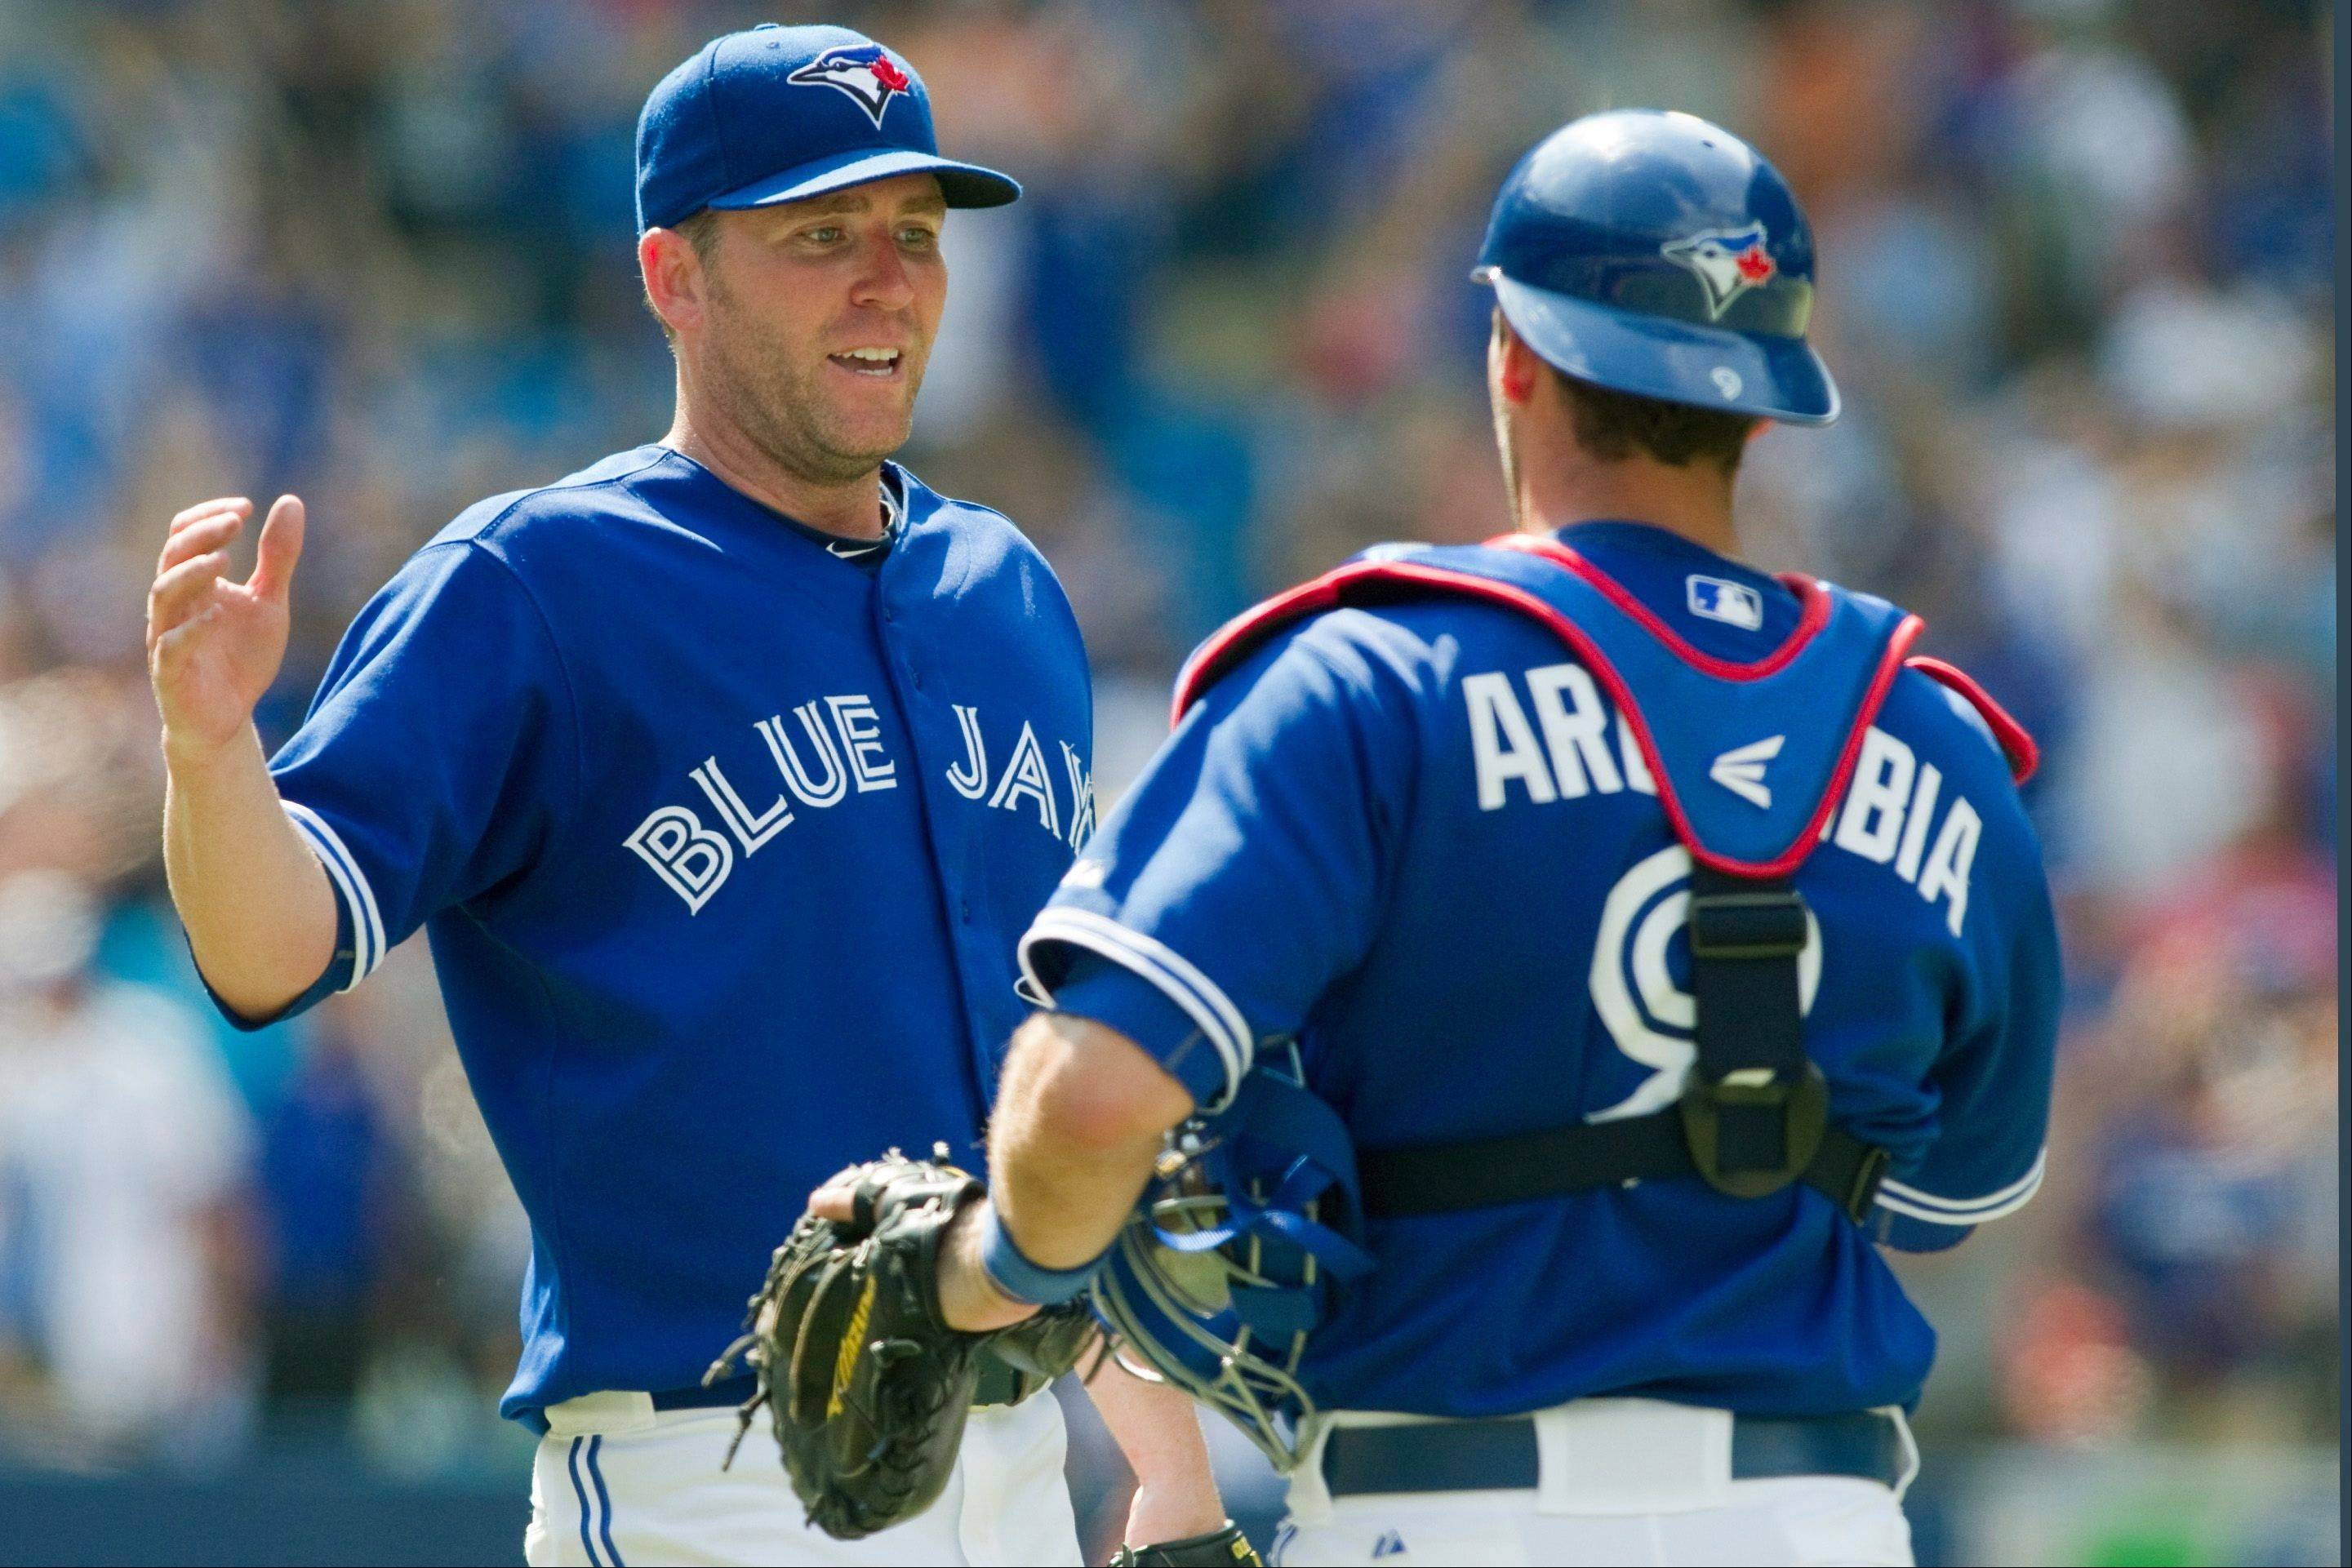 Toronto Blue Jays closer Casey Janssen, left, is congratulated by catcher J.P. Arencibia Saturday after defeating the Cleveland Indians 11-9 in Toronto.